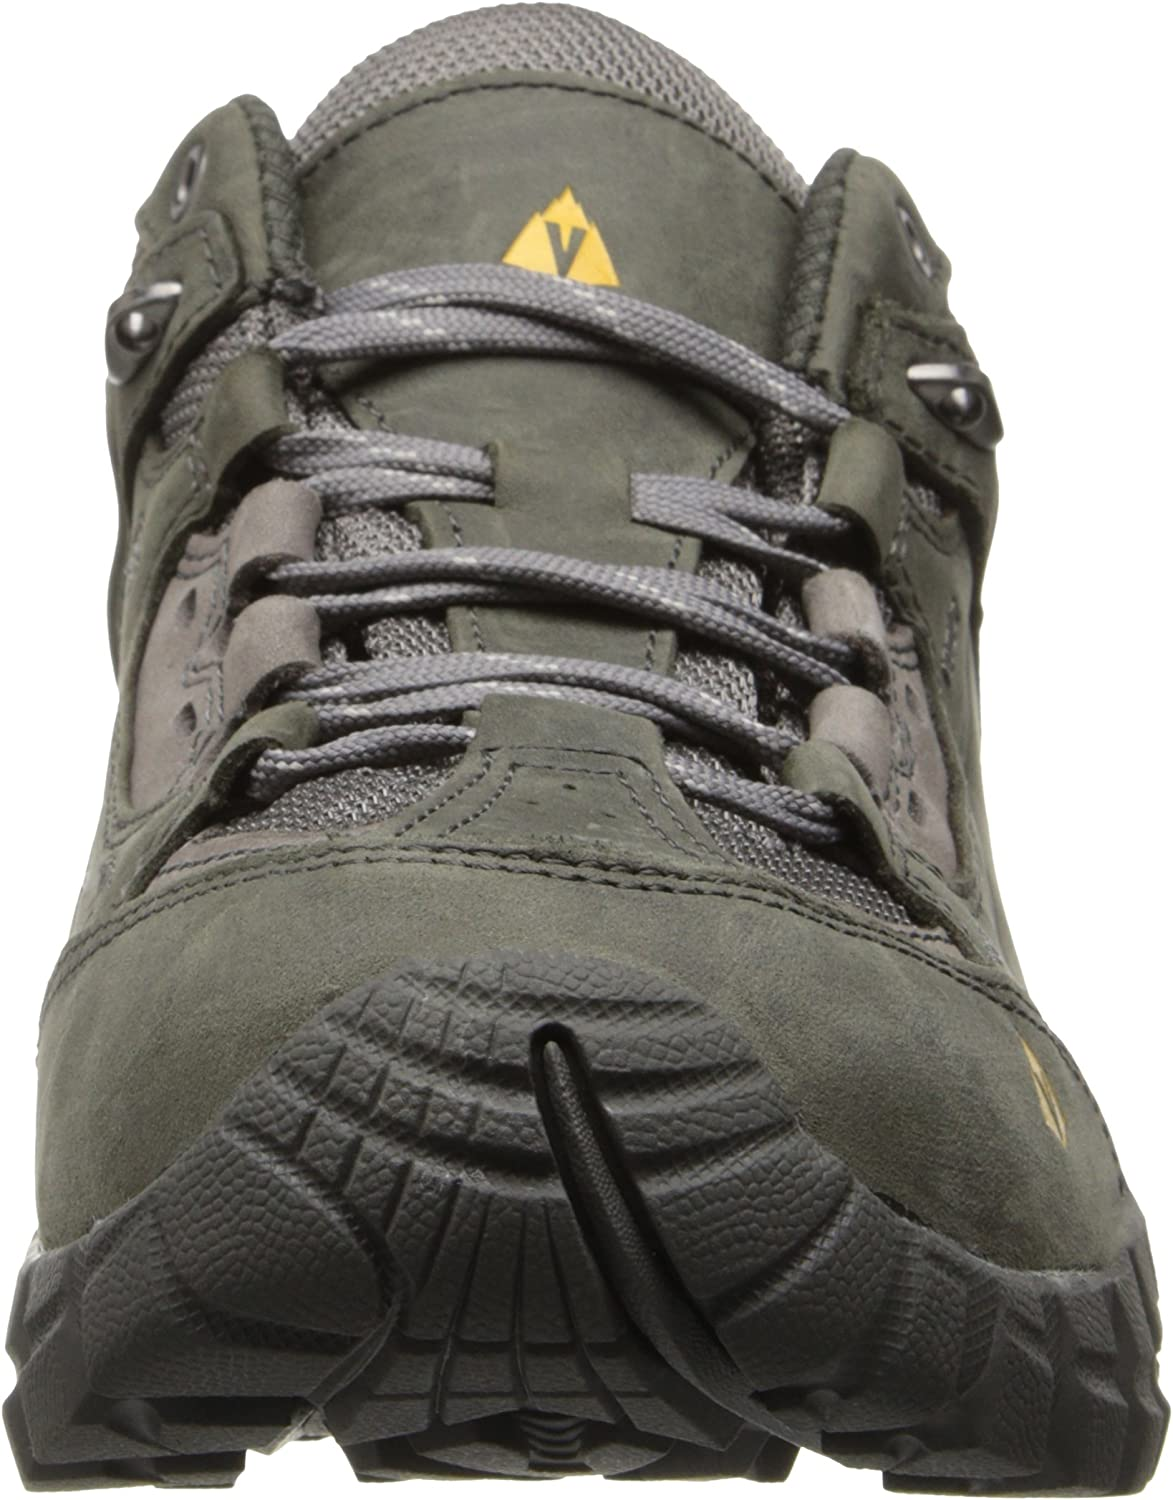 Vasque Mens Mantra 2.0 Gore-Tex Hiking Boot